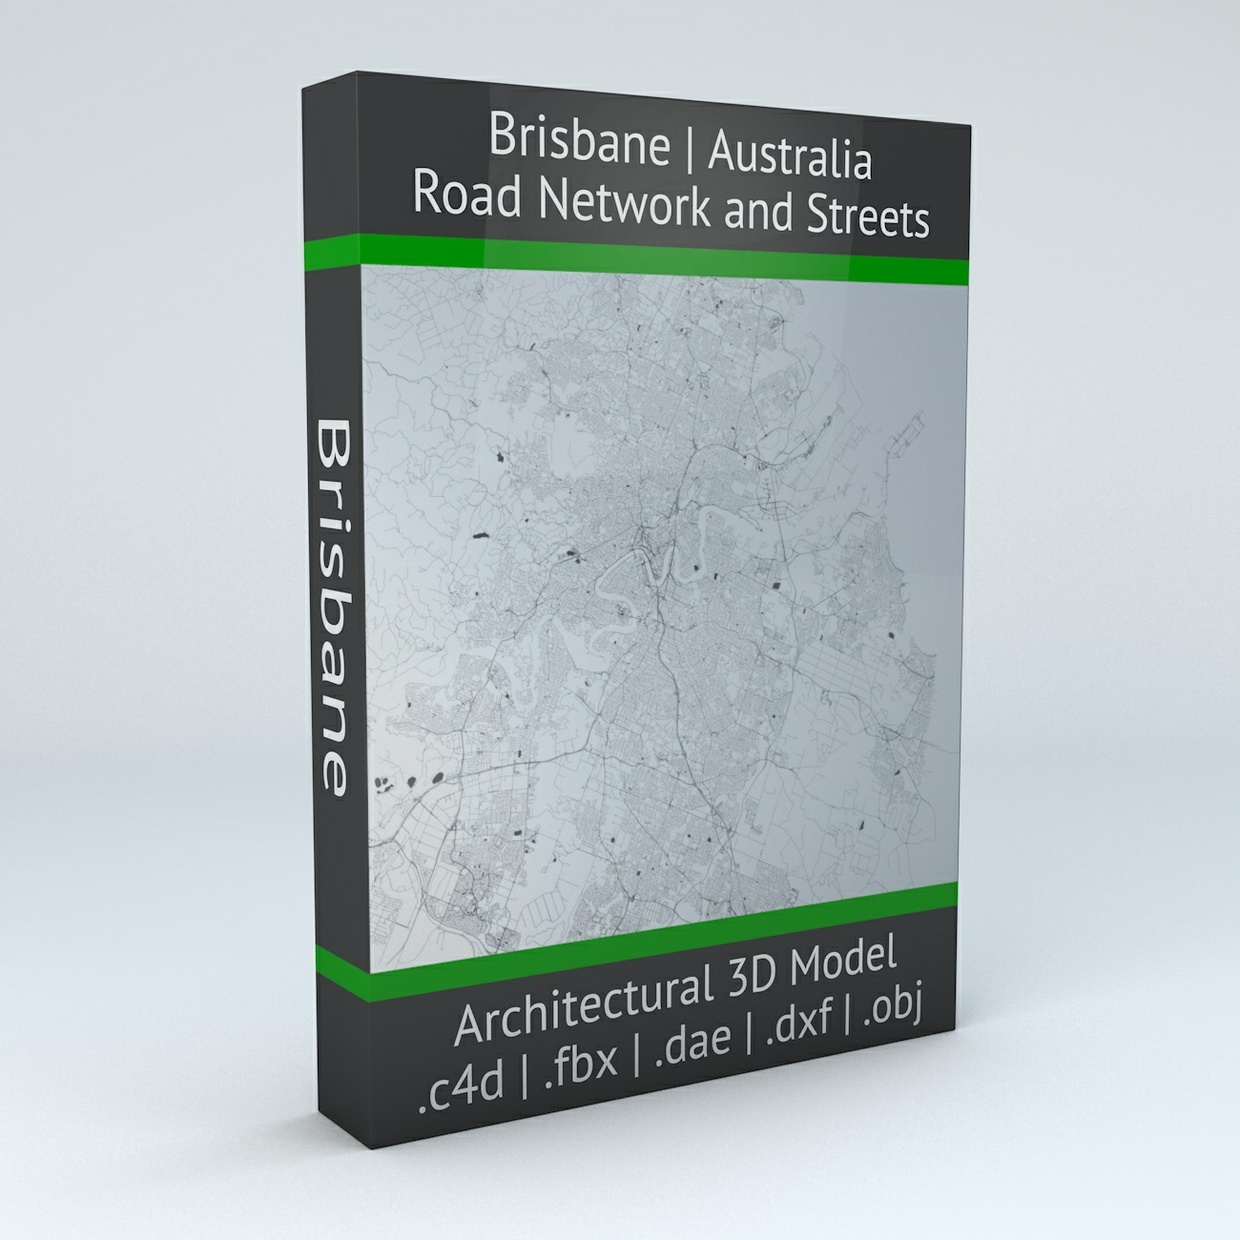 Brisbane Road Network and Streets Architectural 3D Model